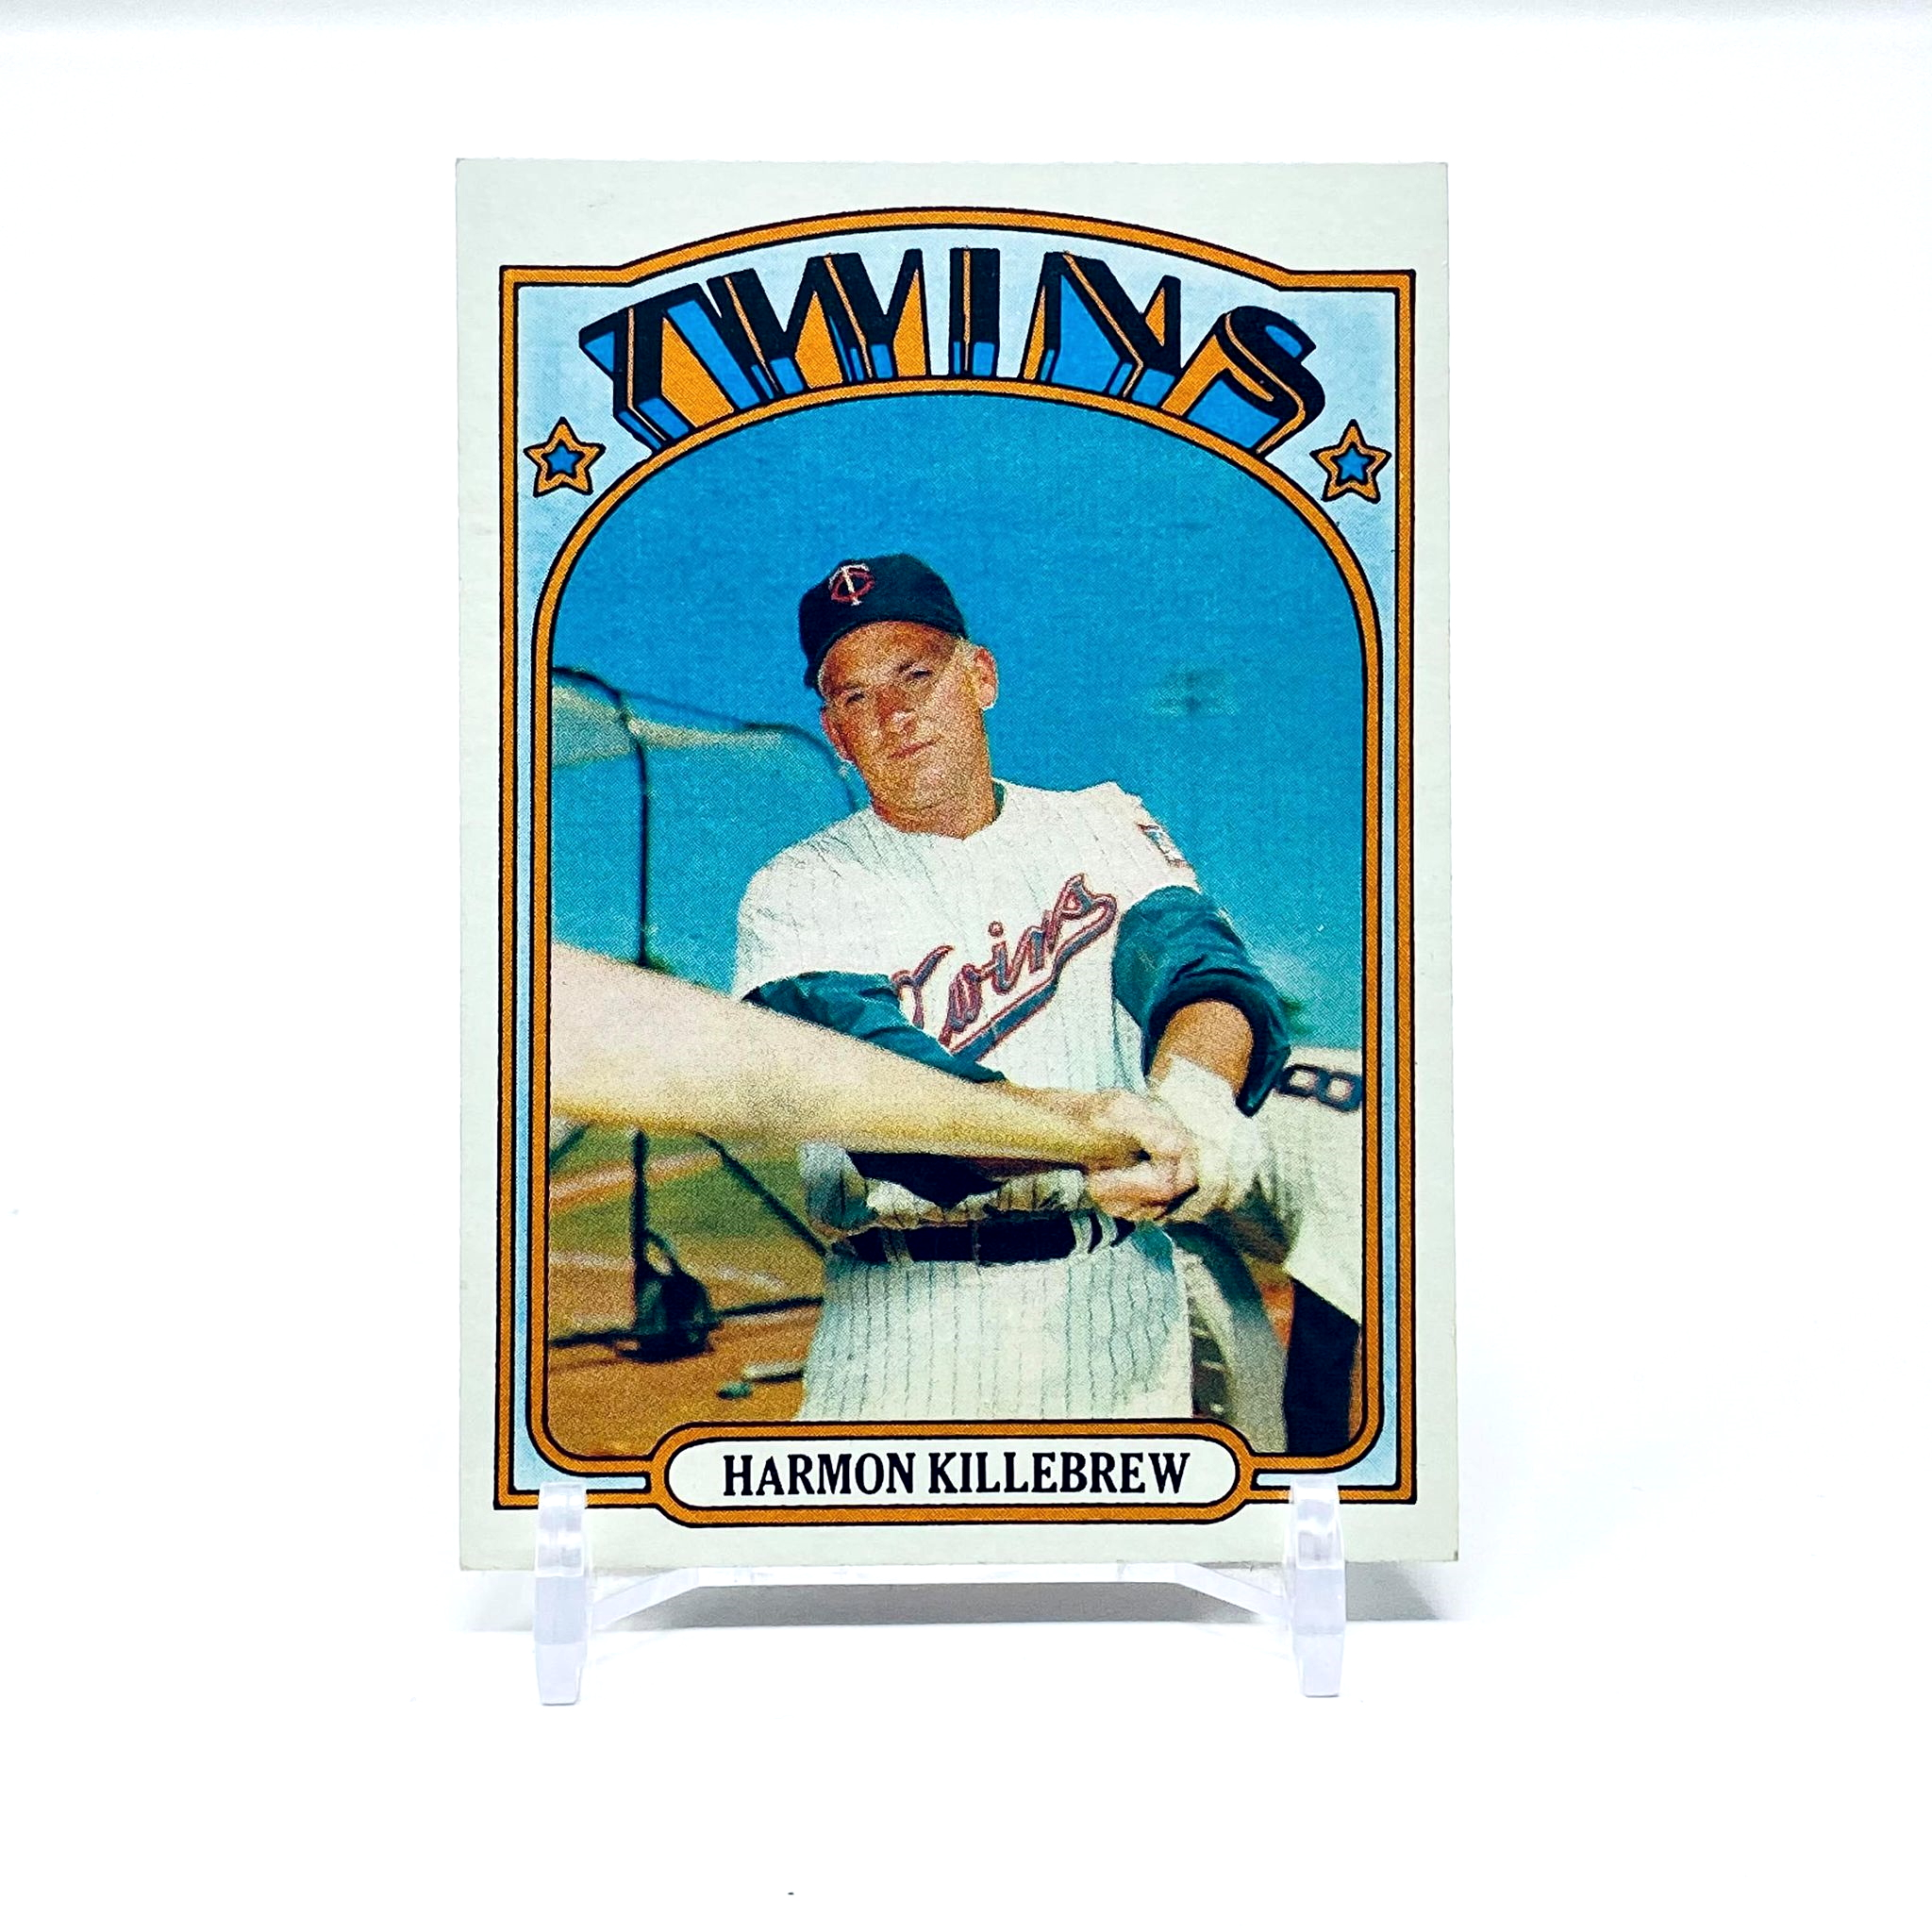 1972 Topps Harmon Killebrew Minnesota Twins